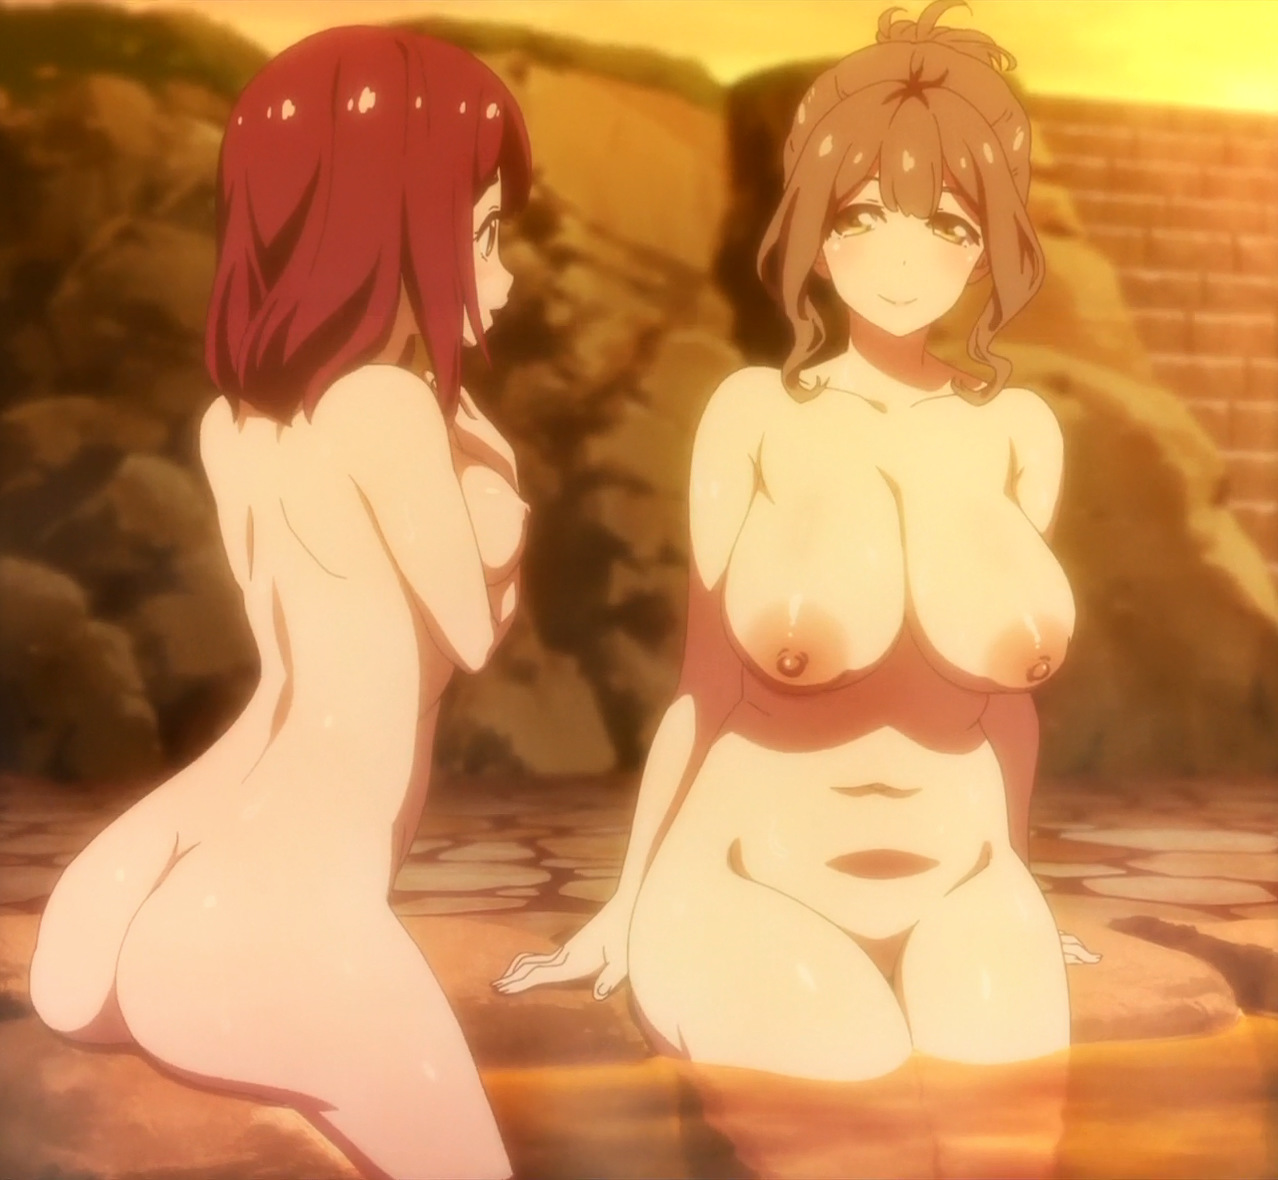 [Ohys-Raws] Valkyrie Drive Mermaid - 04 (AT-X 1280x720 x264 AAC).mp4_snapshot_10.46_[2015.10.31_12.17.56]_stitch